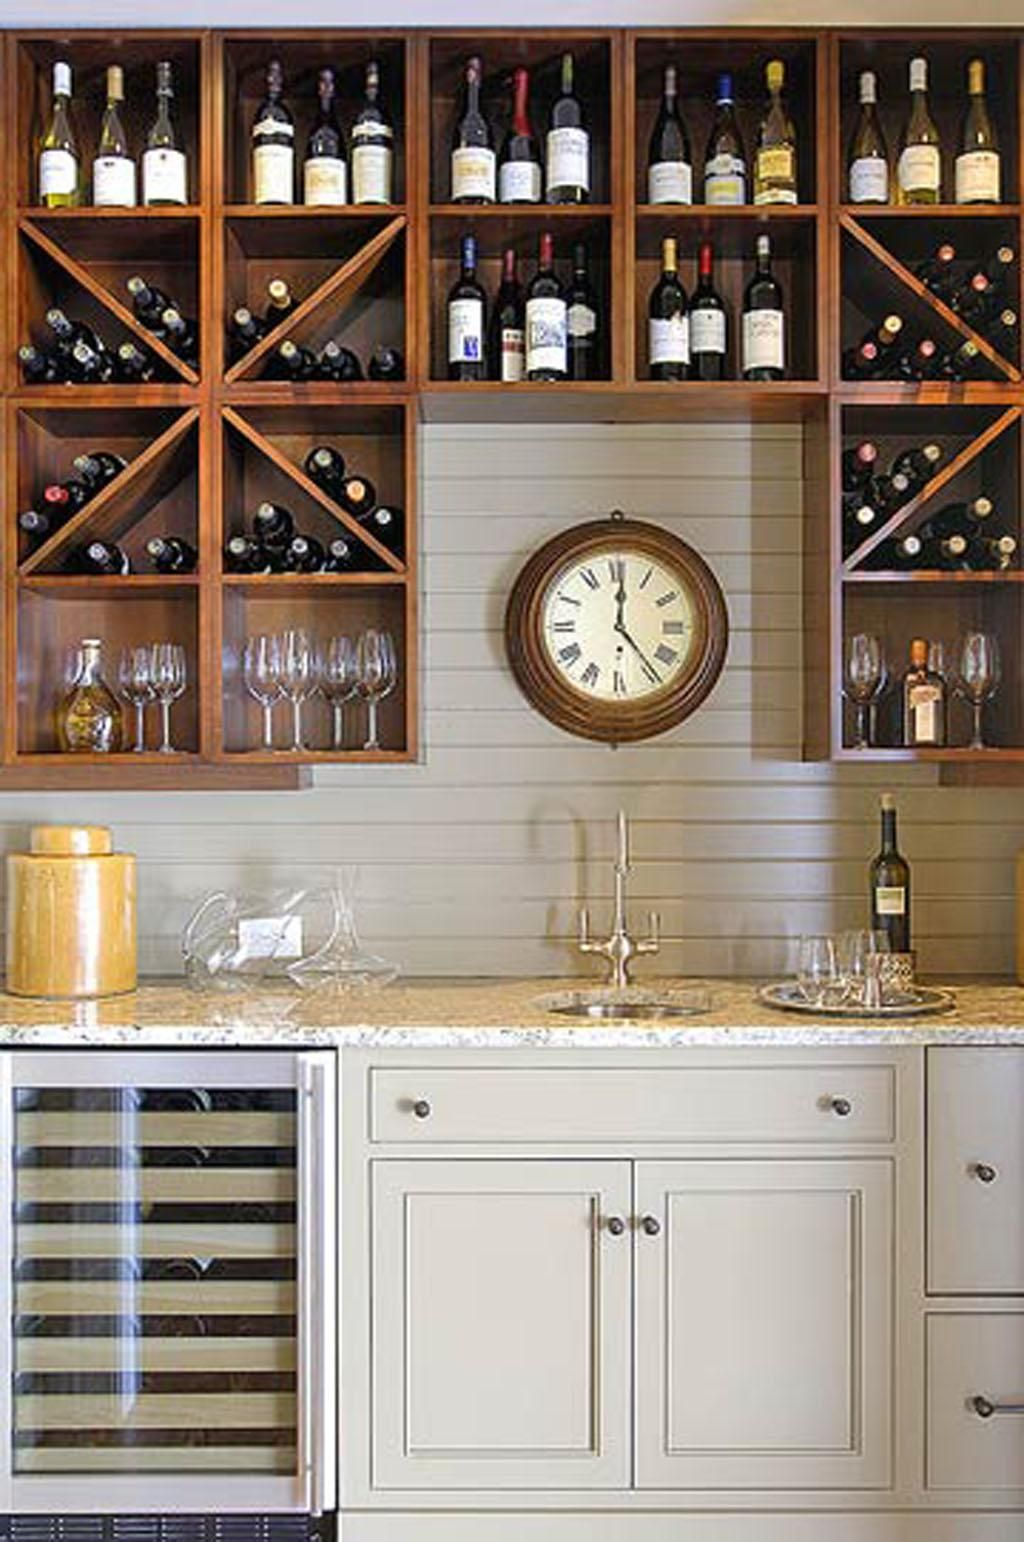 Wine bar decorating ideas home wet bar wine storage wine bar wine wet bar ideas Home bar design ideas pictures